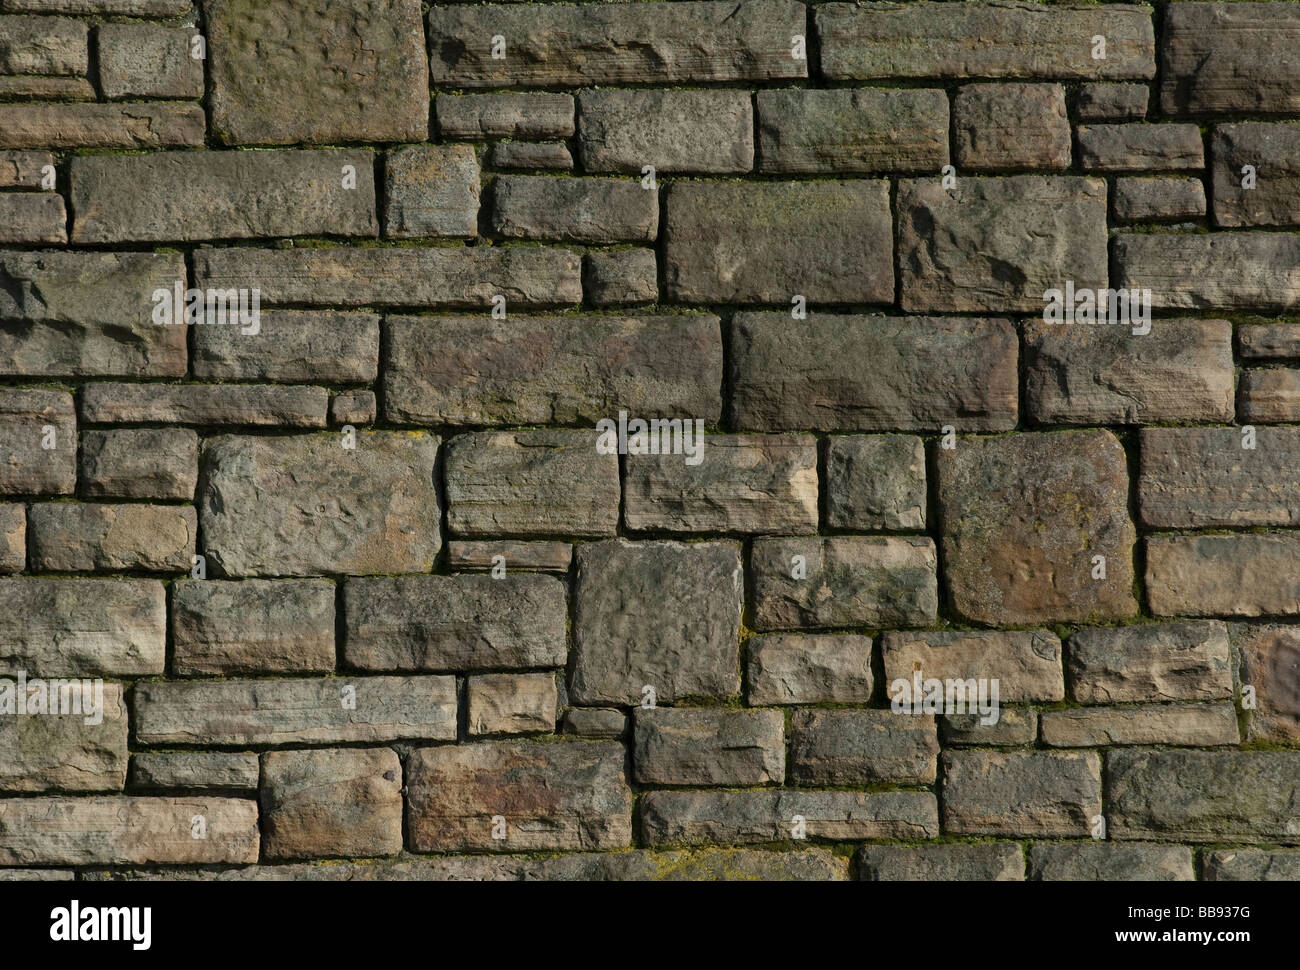 a stone wall made of natural stone bricks stock photo royalty free image 24171716 alamy. Black Bedroom Furniture Sets. Home Design Ideas